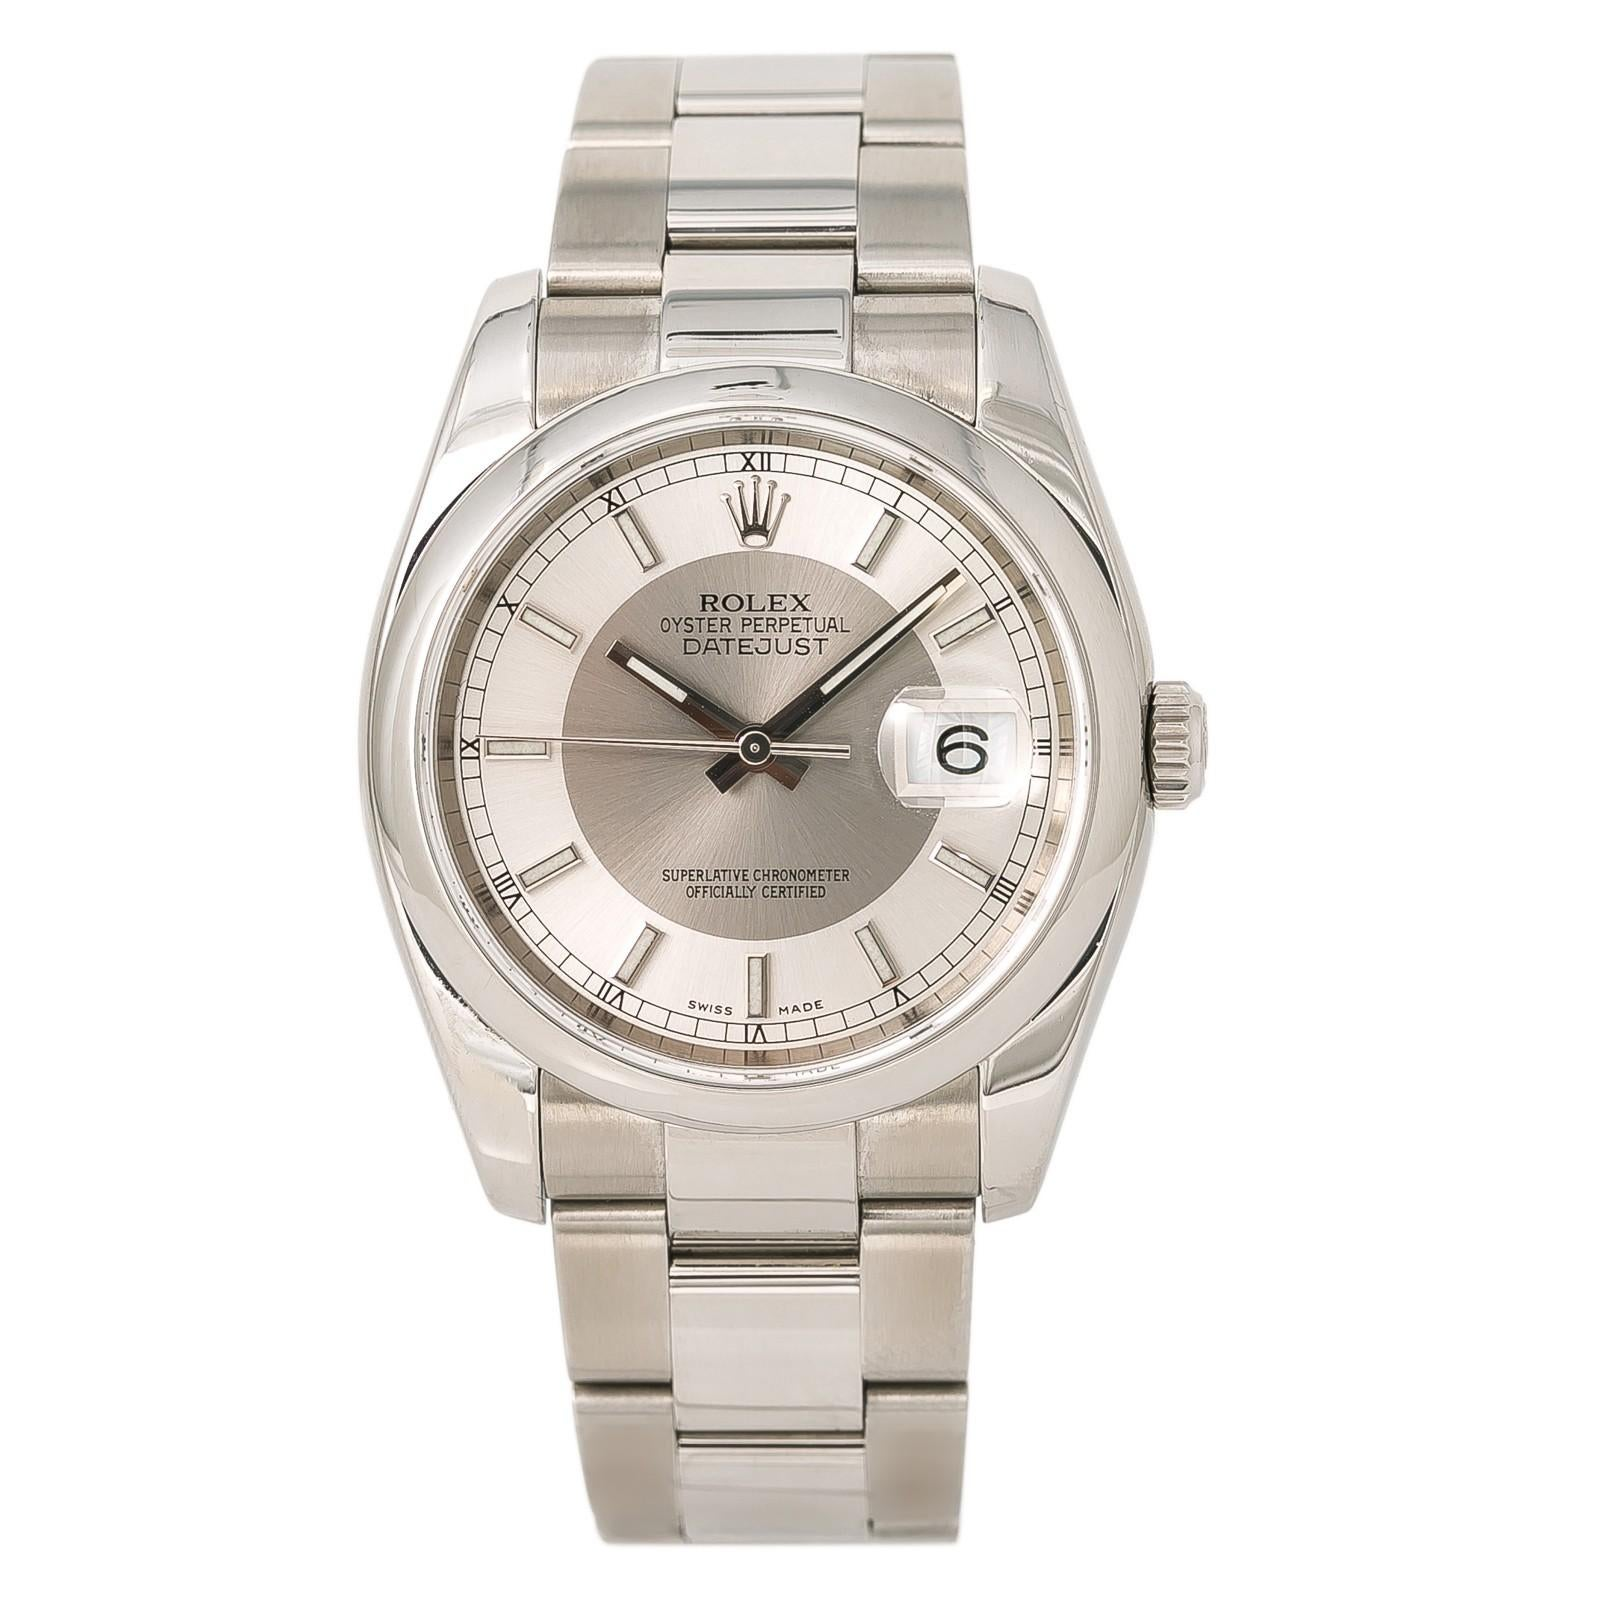 Rolex Datejust6600, Dial Certified Authentic